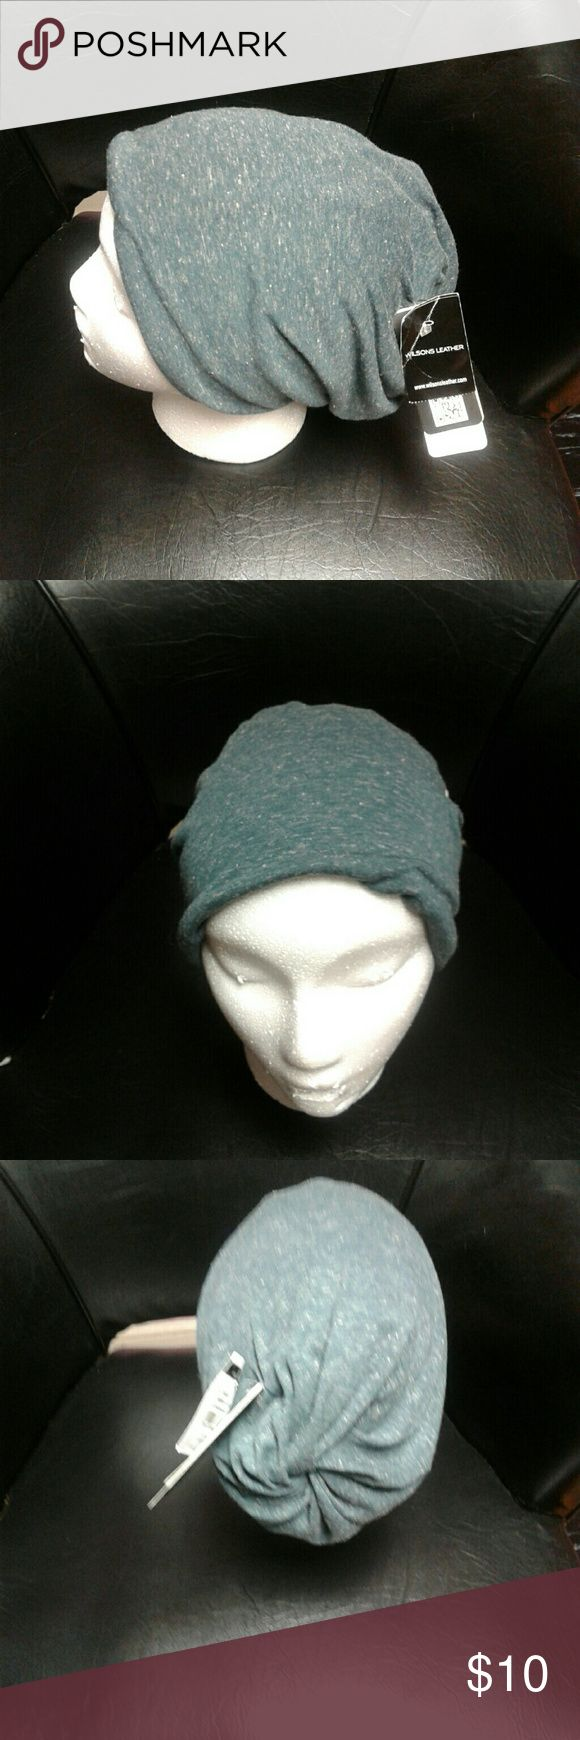 Ladies Beanie/Headband/Turban Beanie/Headwrap...For bad hair days or everyday. Hunter green color with white sprecks. Versatile for different lengths hair. Wilson's Leather Accessories Scarves & Wraps